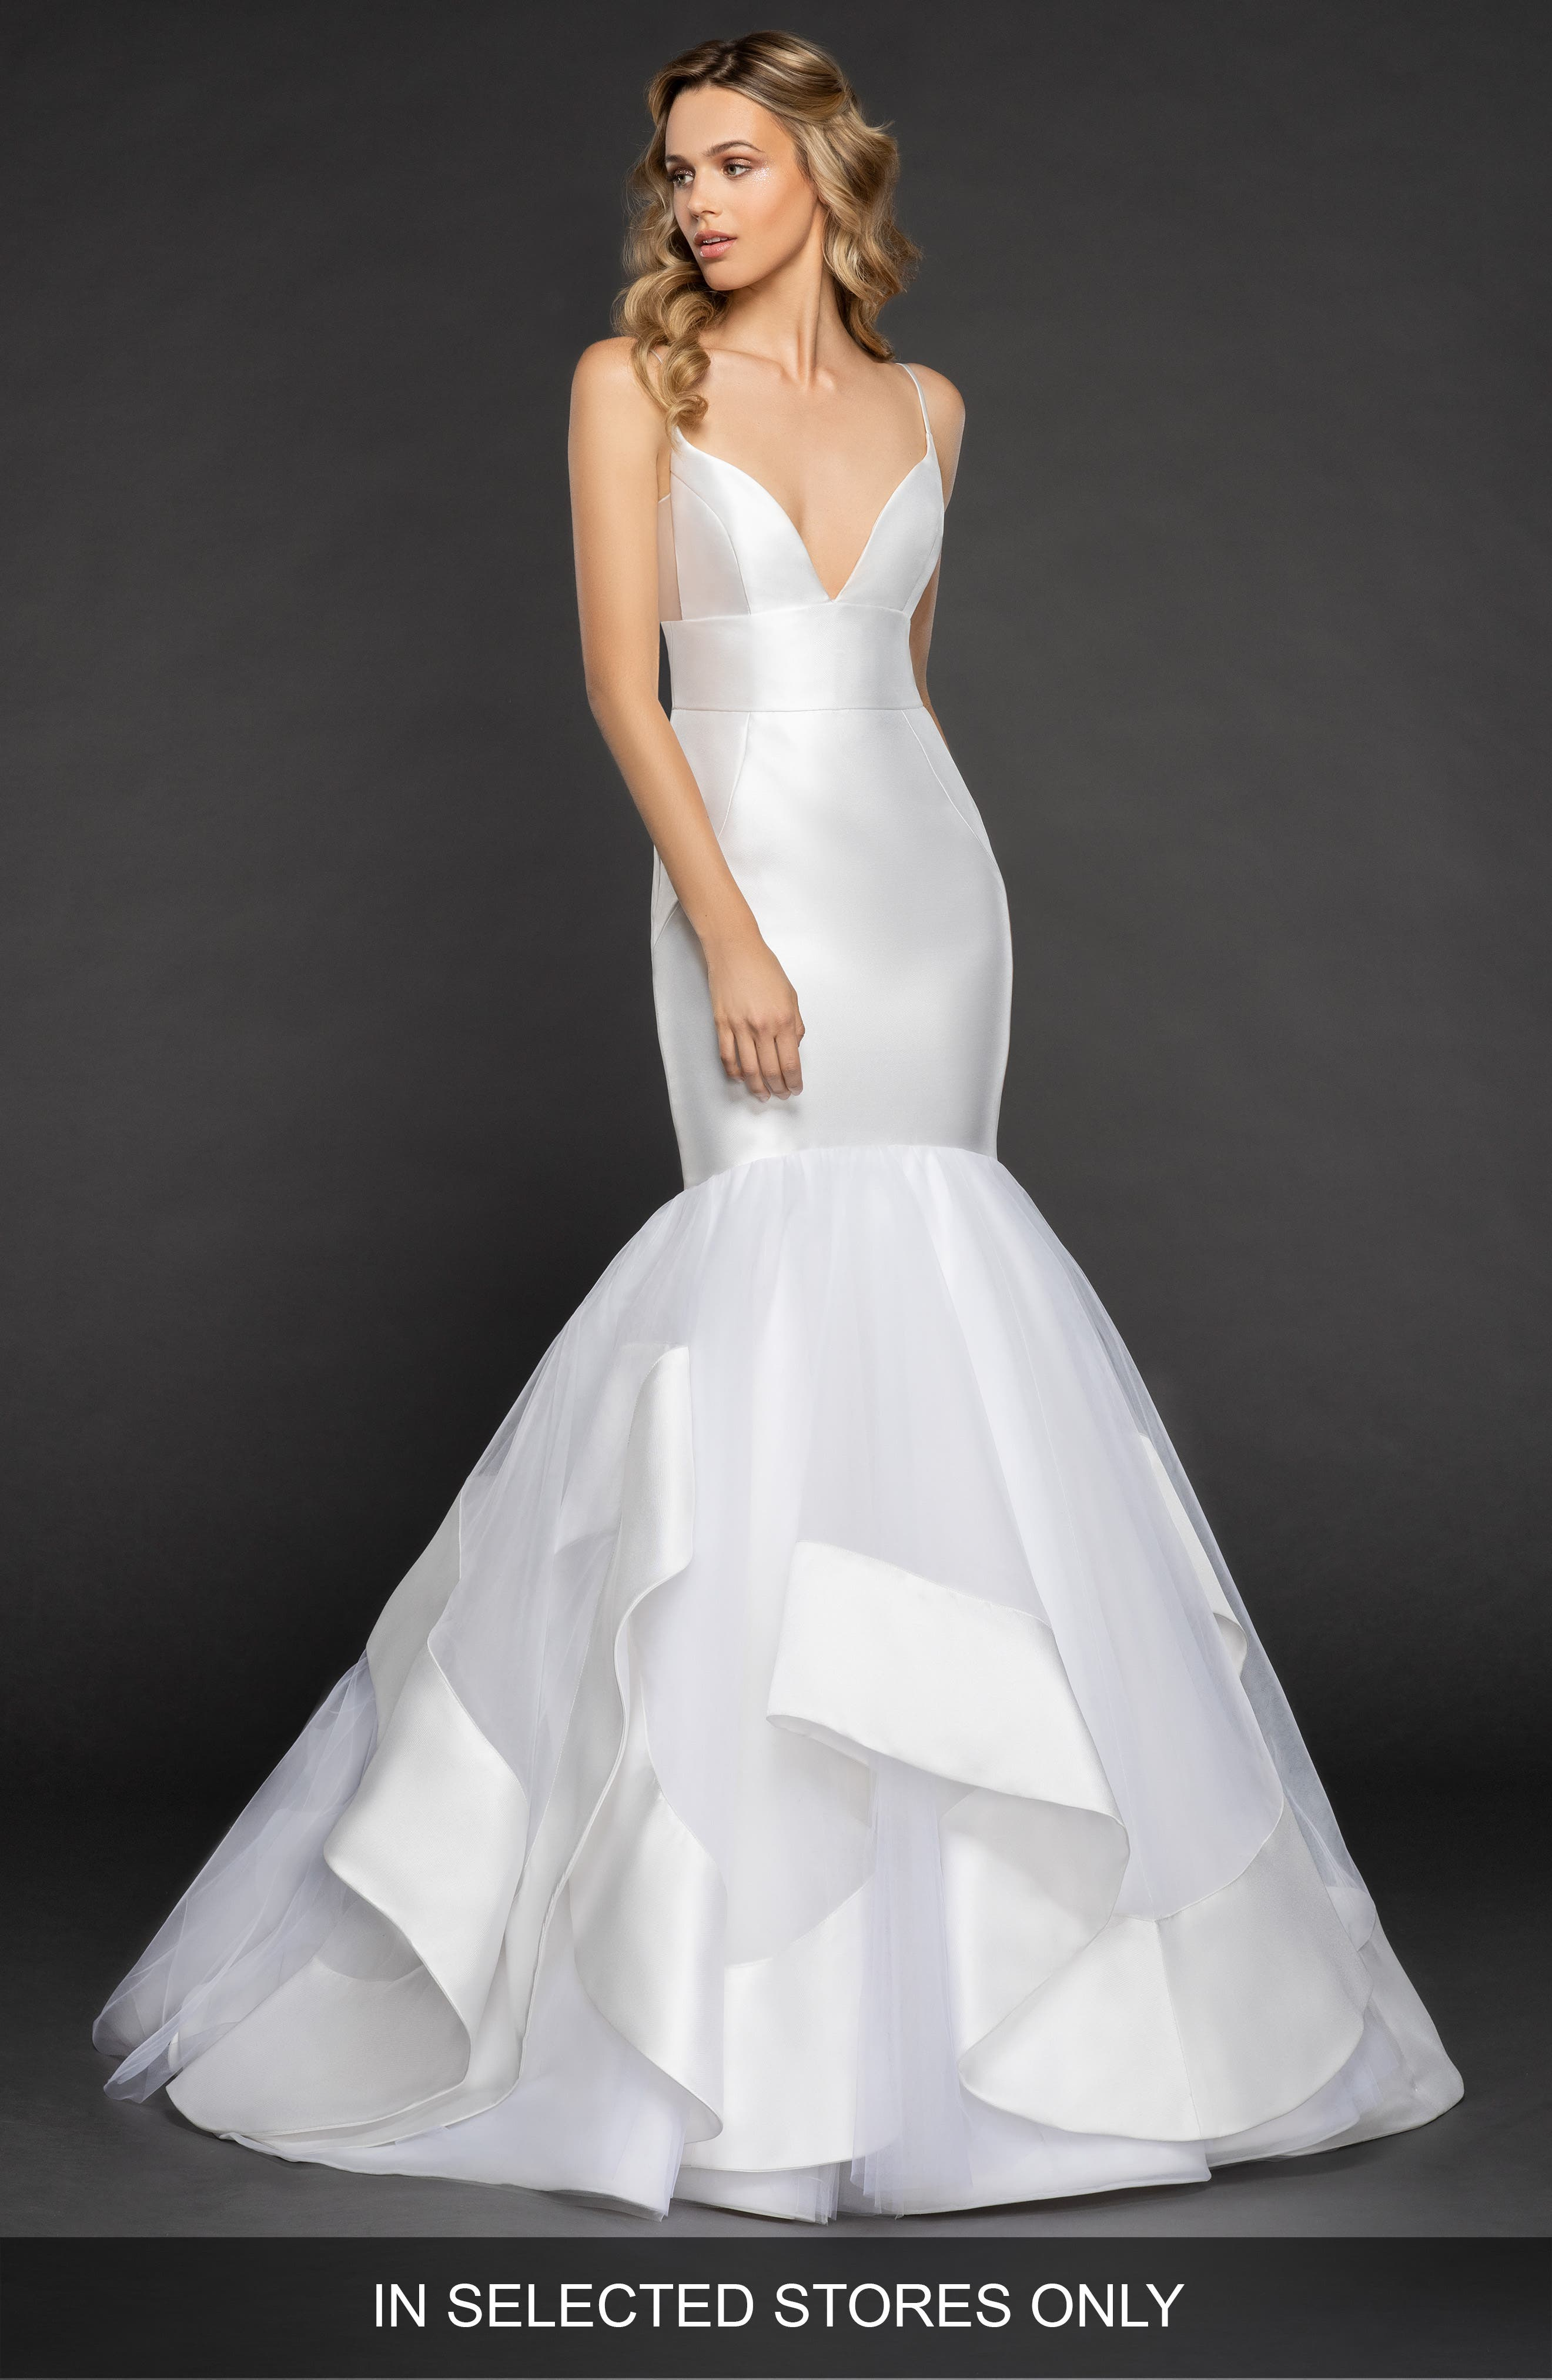 Hayley Paige Nevada Mikado & Tulle Mermaid Gown, Size IN STORE ONLY - Ivory